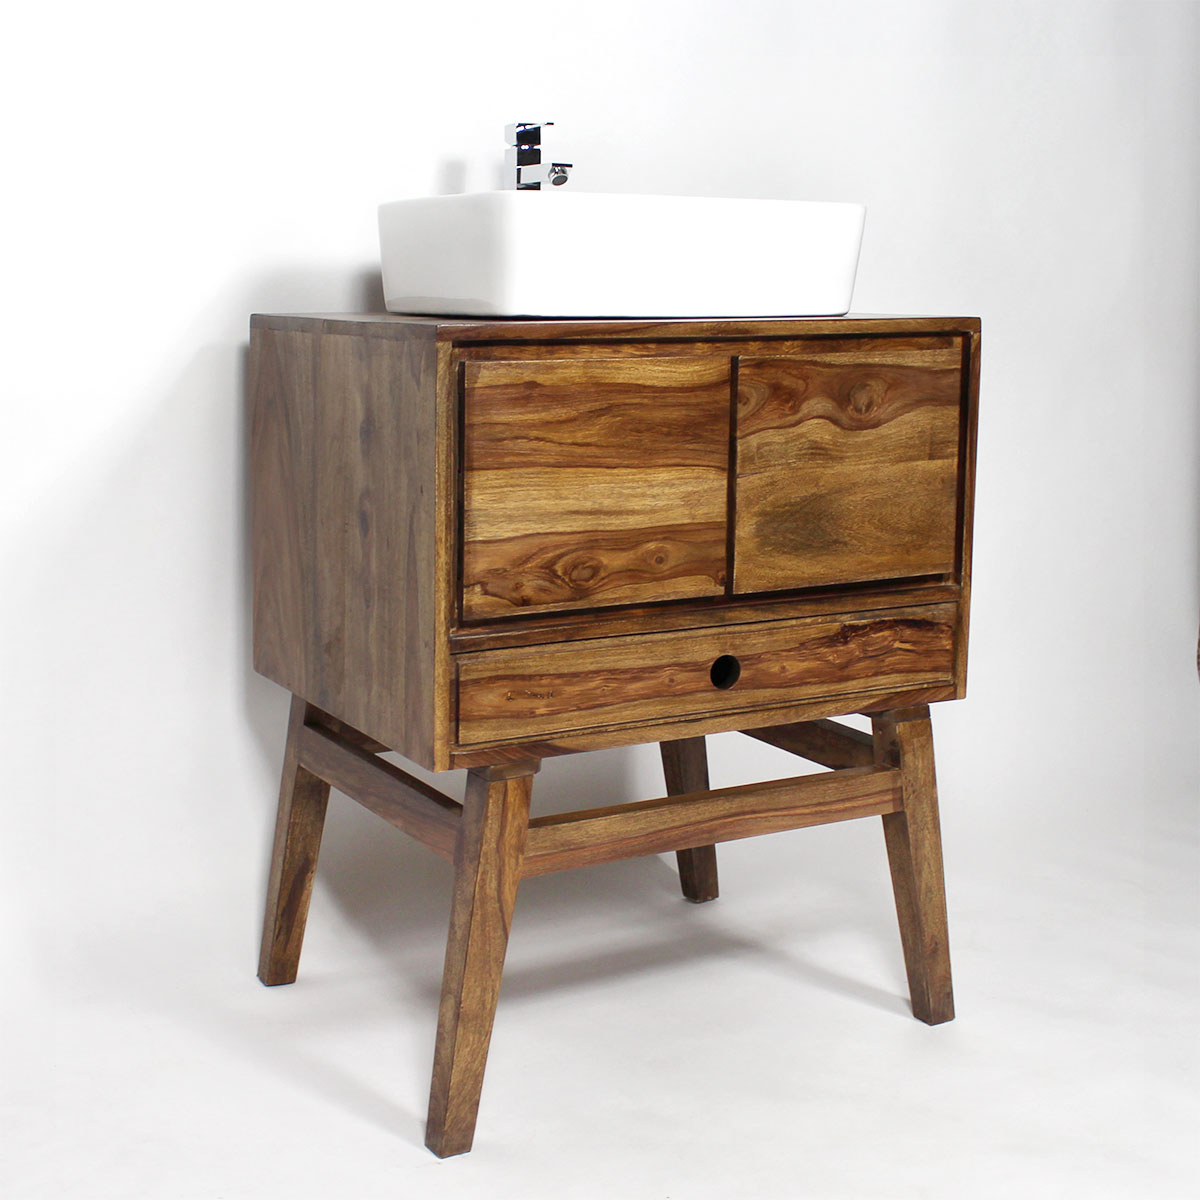 meuble salle de bain bois massif style scandinave 1 vasque made in meubles. Black Bedroom Furniture Sets. Home Design Ideas